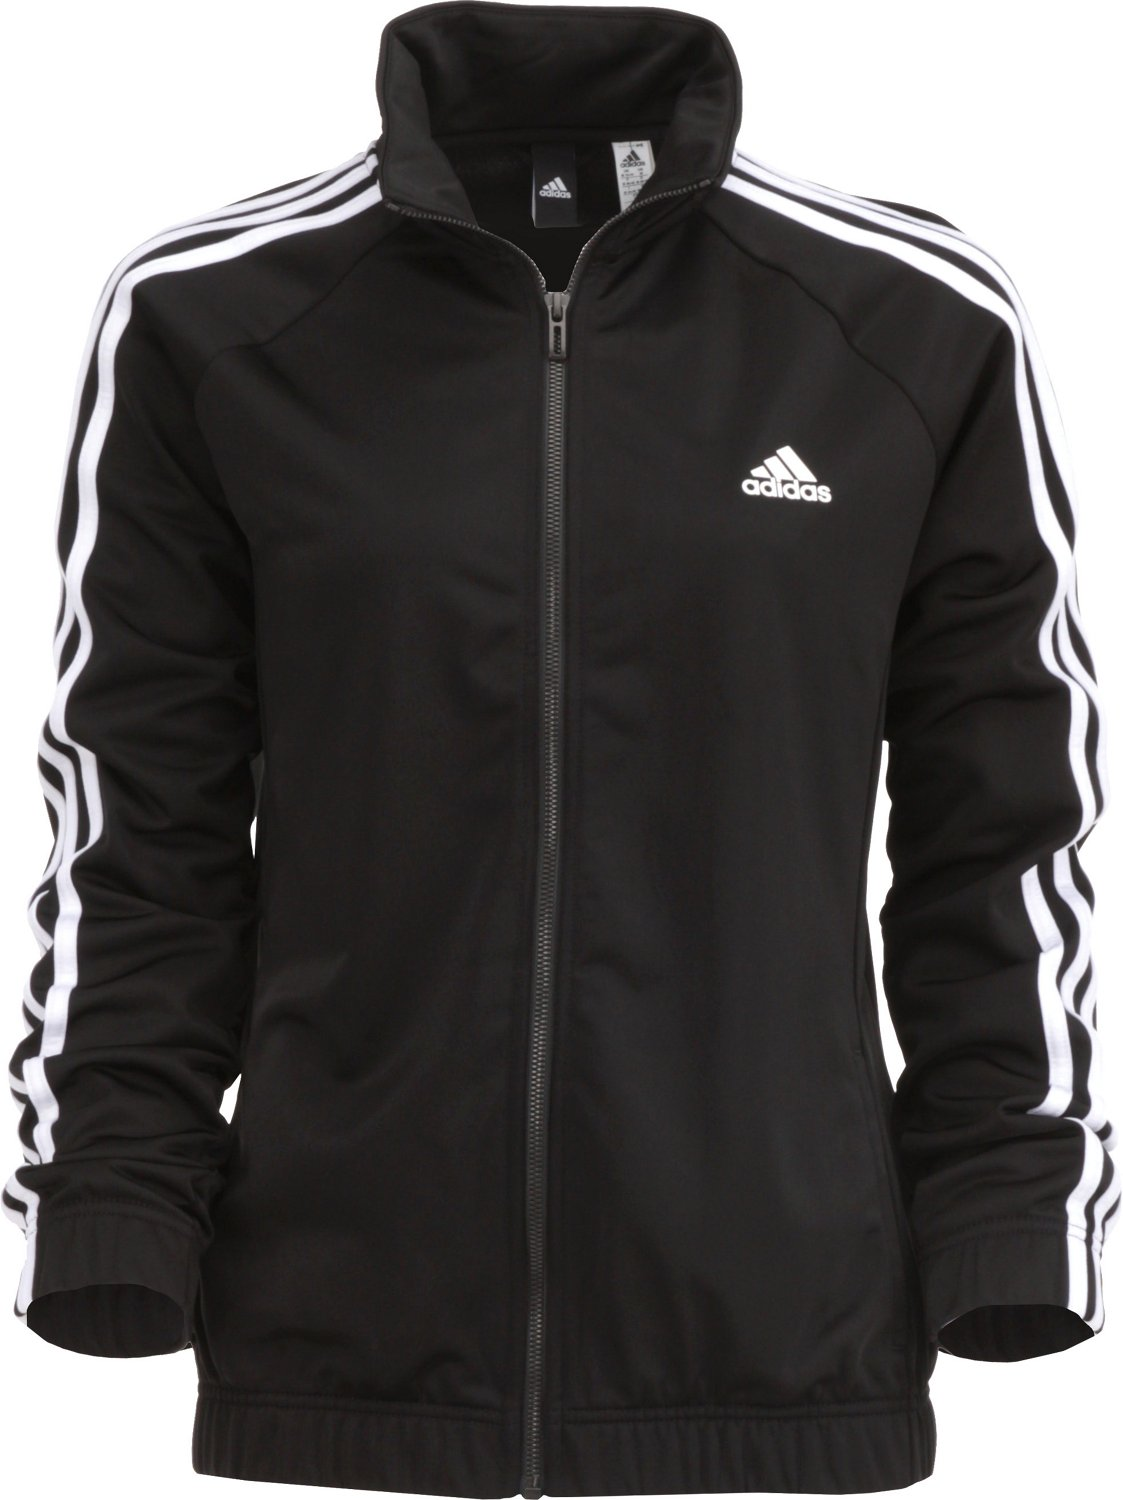 Display product reviews for adidas Women s Designed 2 Move Track Top 6dac1d602bd58